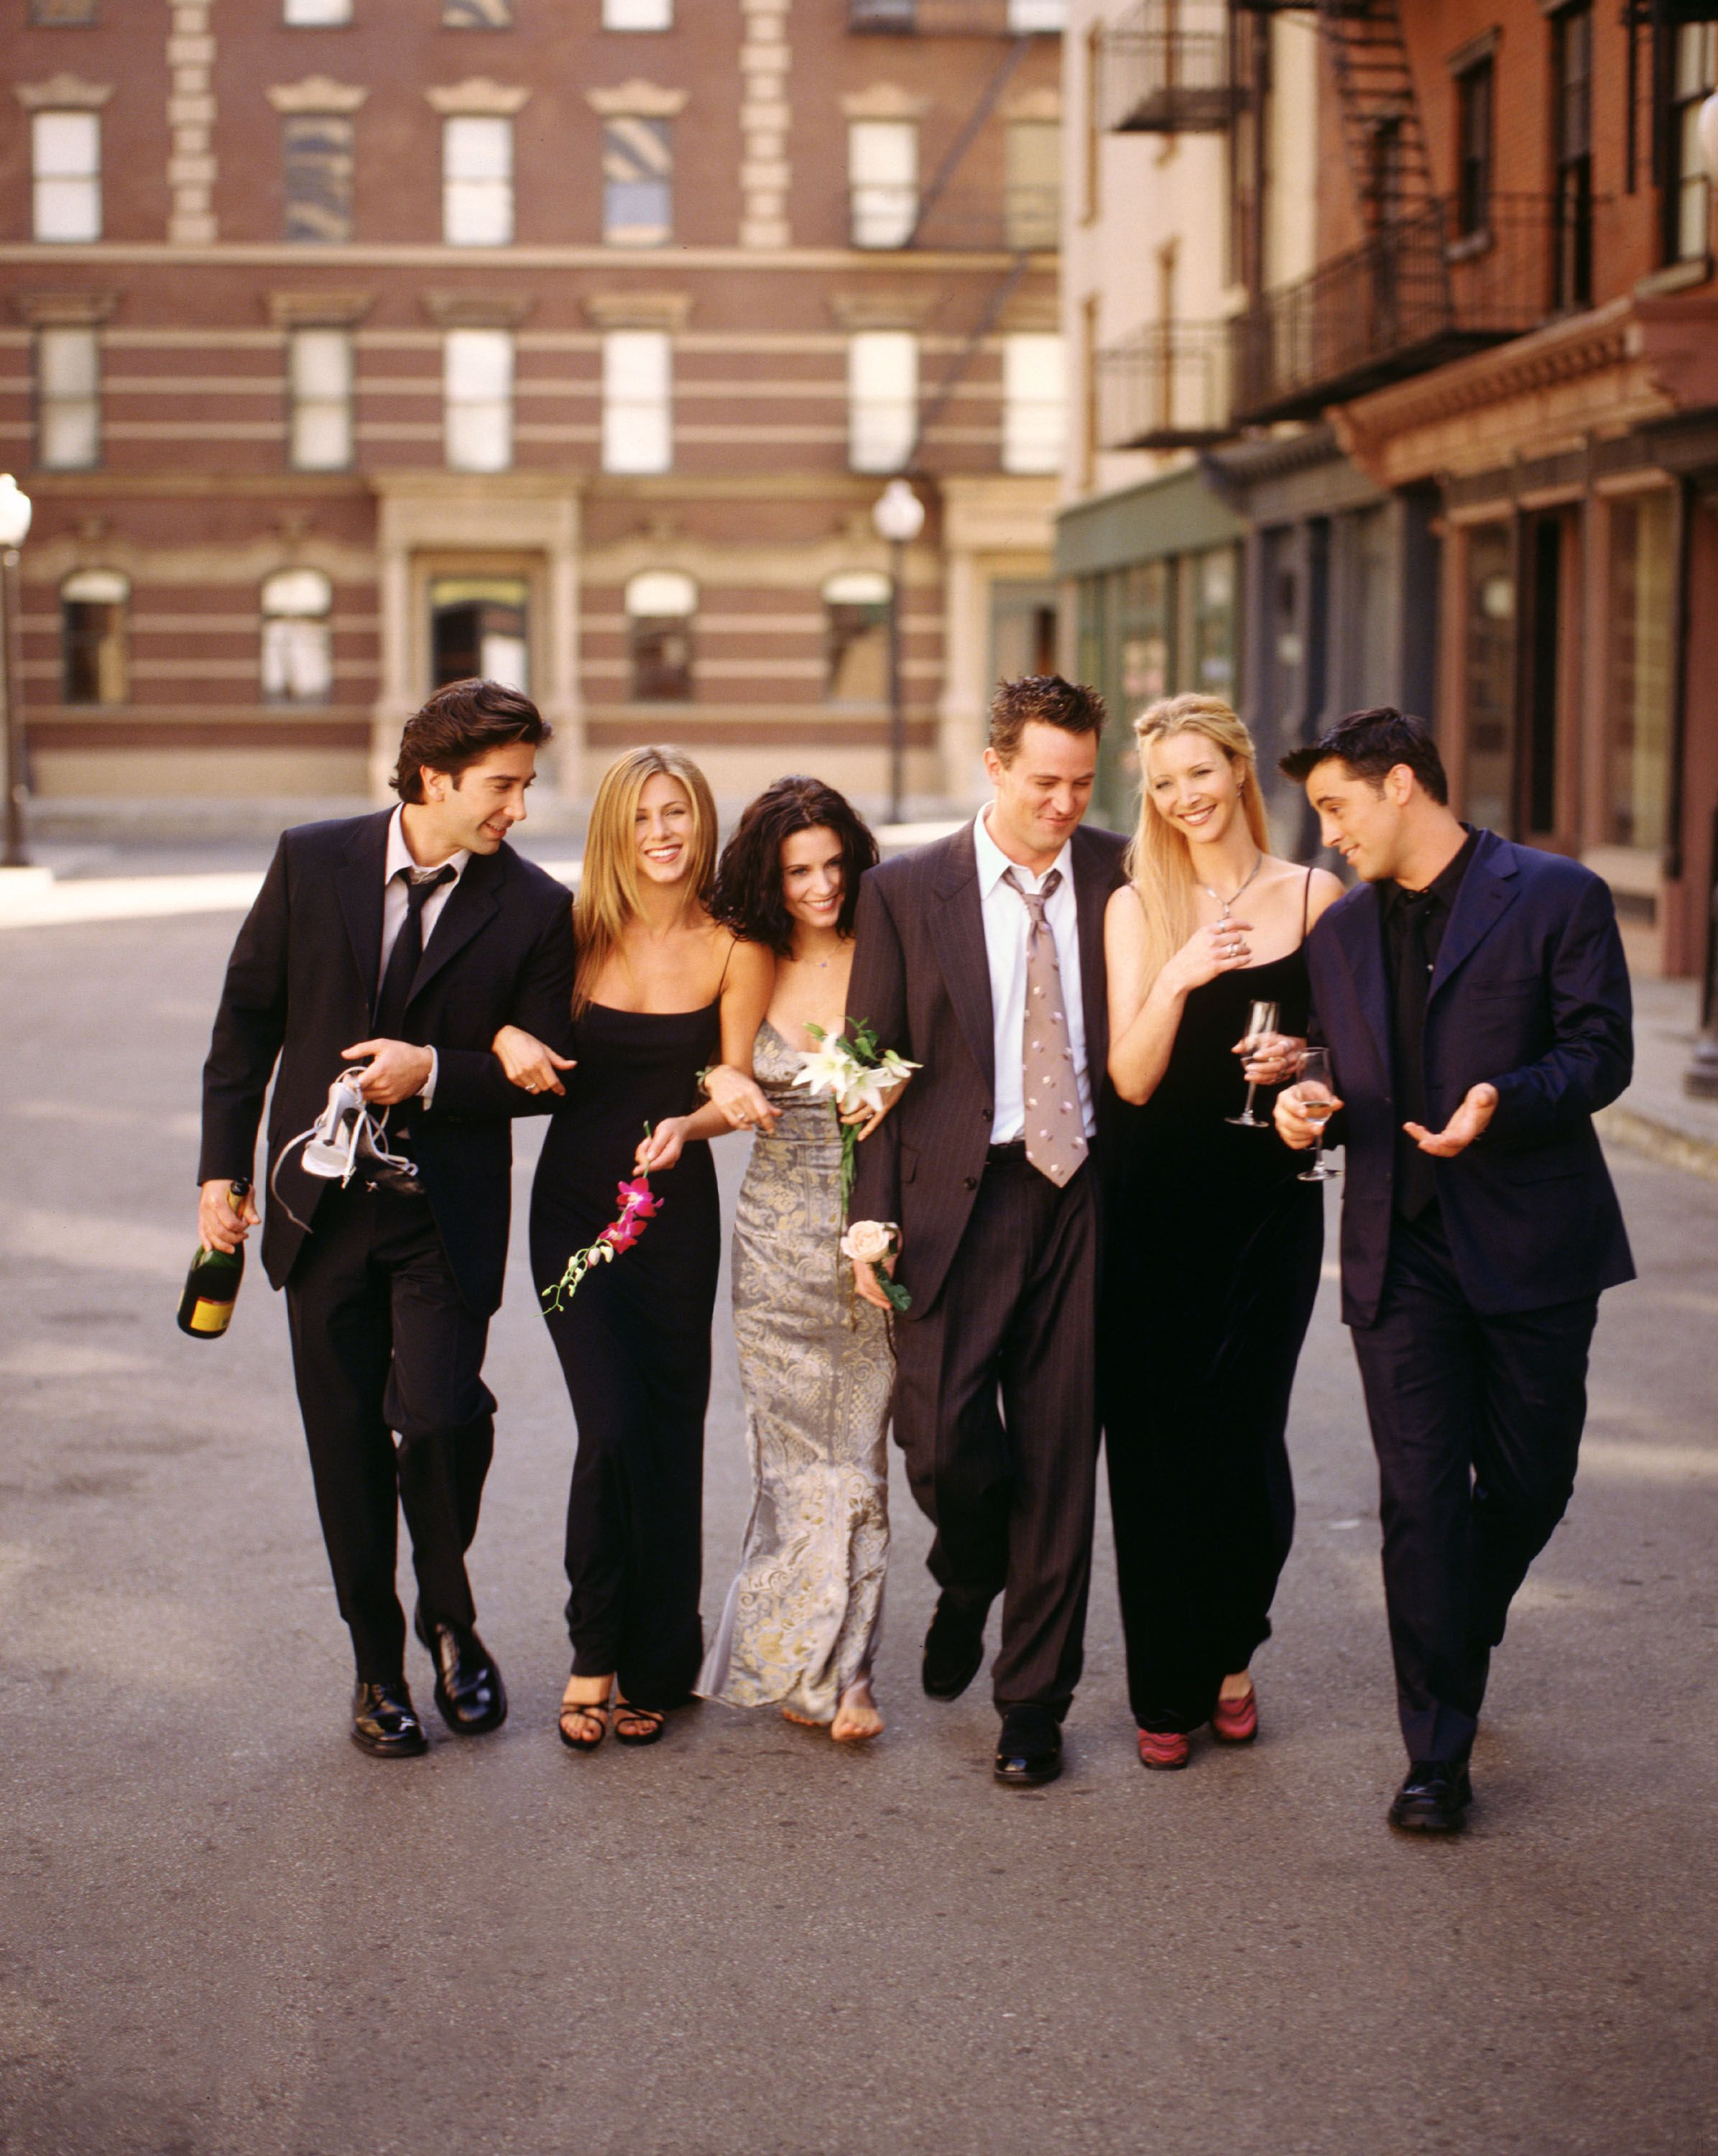 Friends Fans Think a Reunion Is Imminent Thanks to These Cryptic Instagram Posts